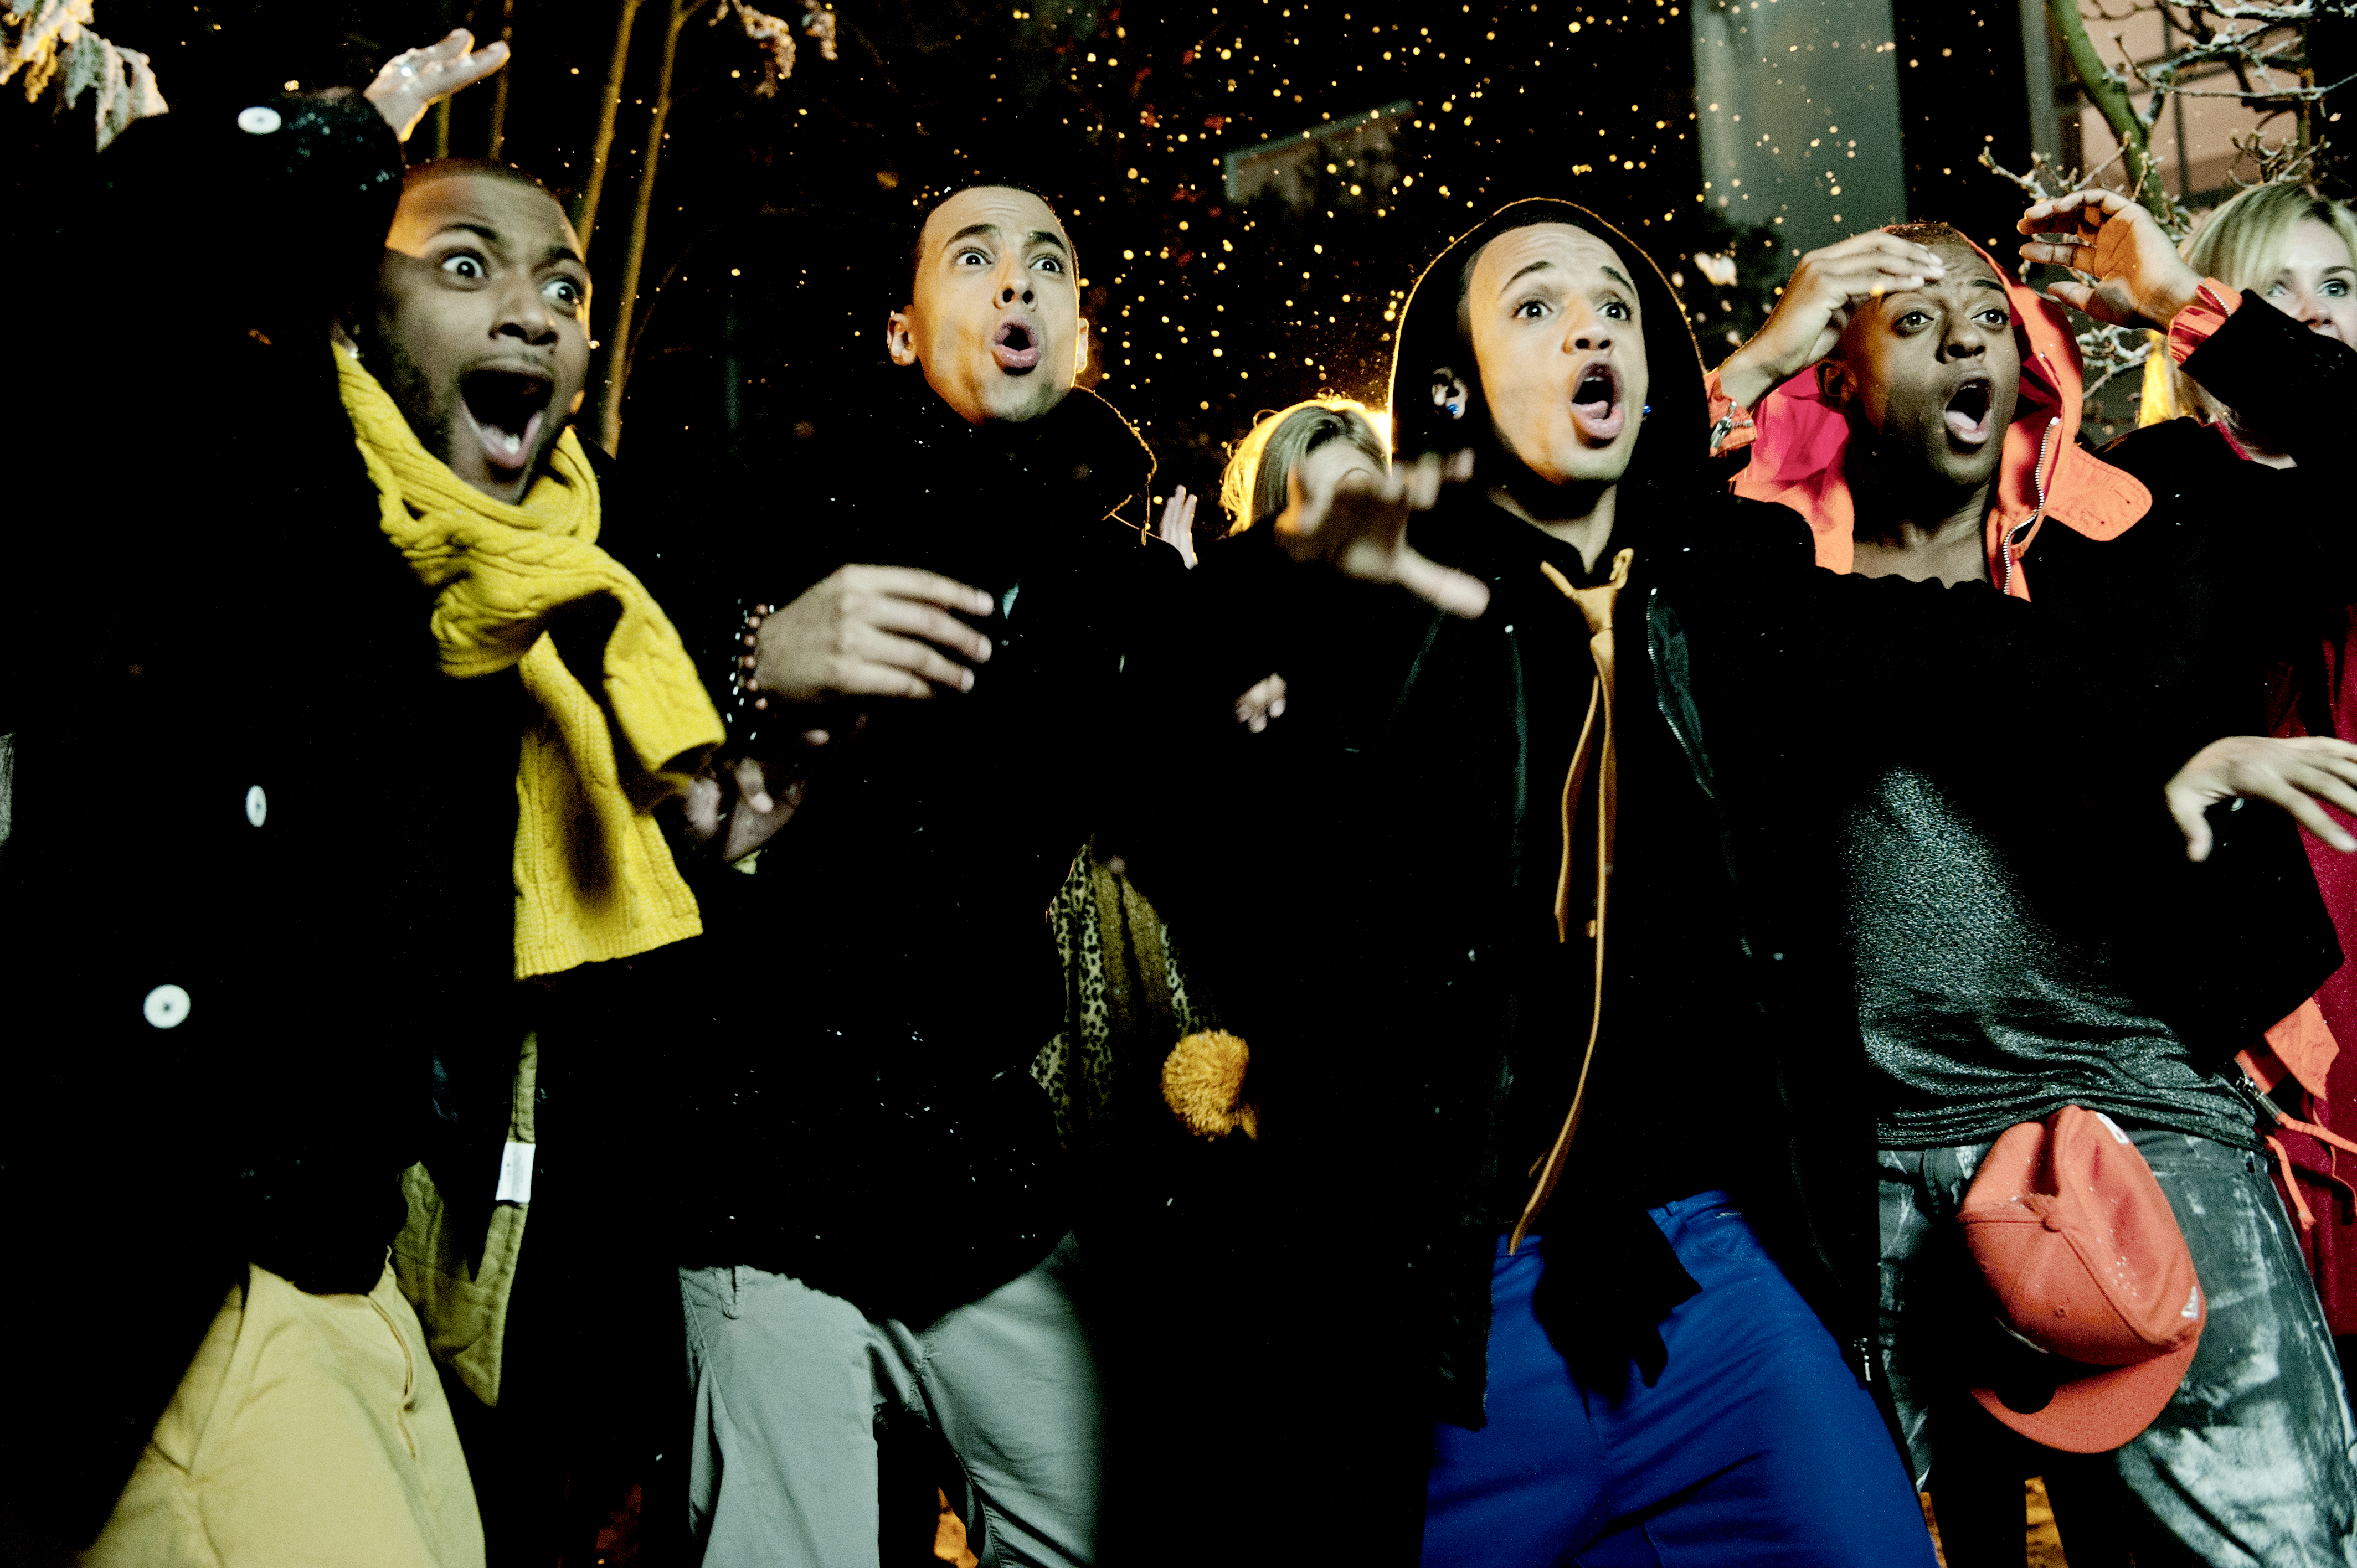 JLS DoYouFeelWhatIFeel photoby IdilSukan DrawHQ 31 Hot Shots: JLS Play In The Snow For New Video